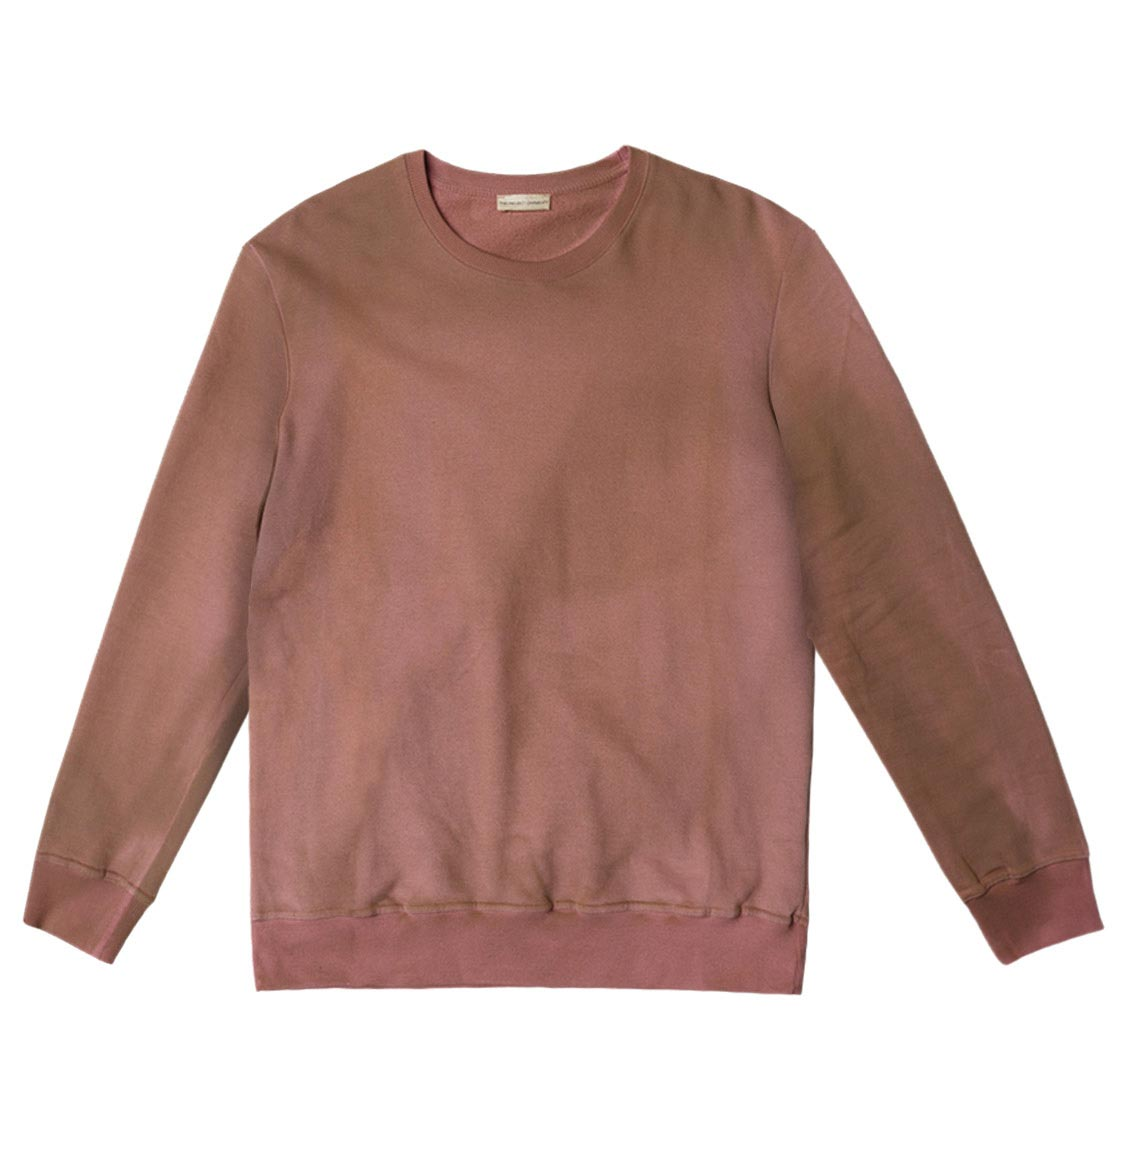 Acid Dye Organic Cotton Crew Neck Sweatshirt Dusty Pink